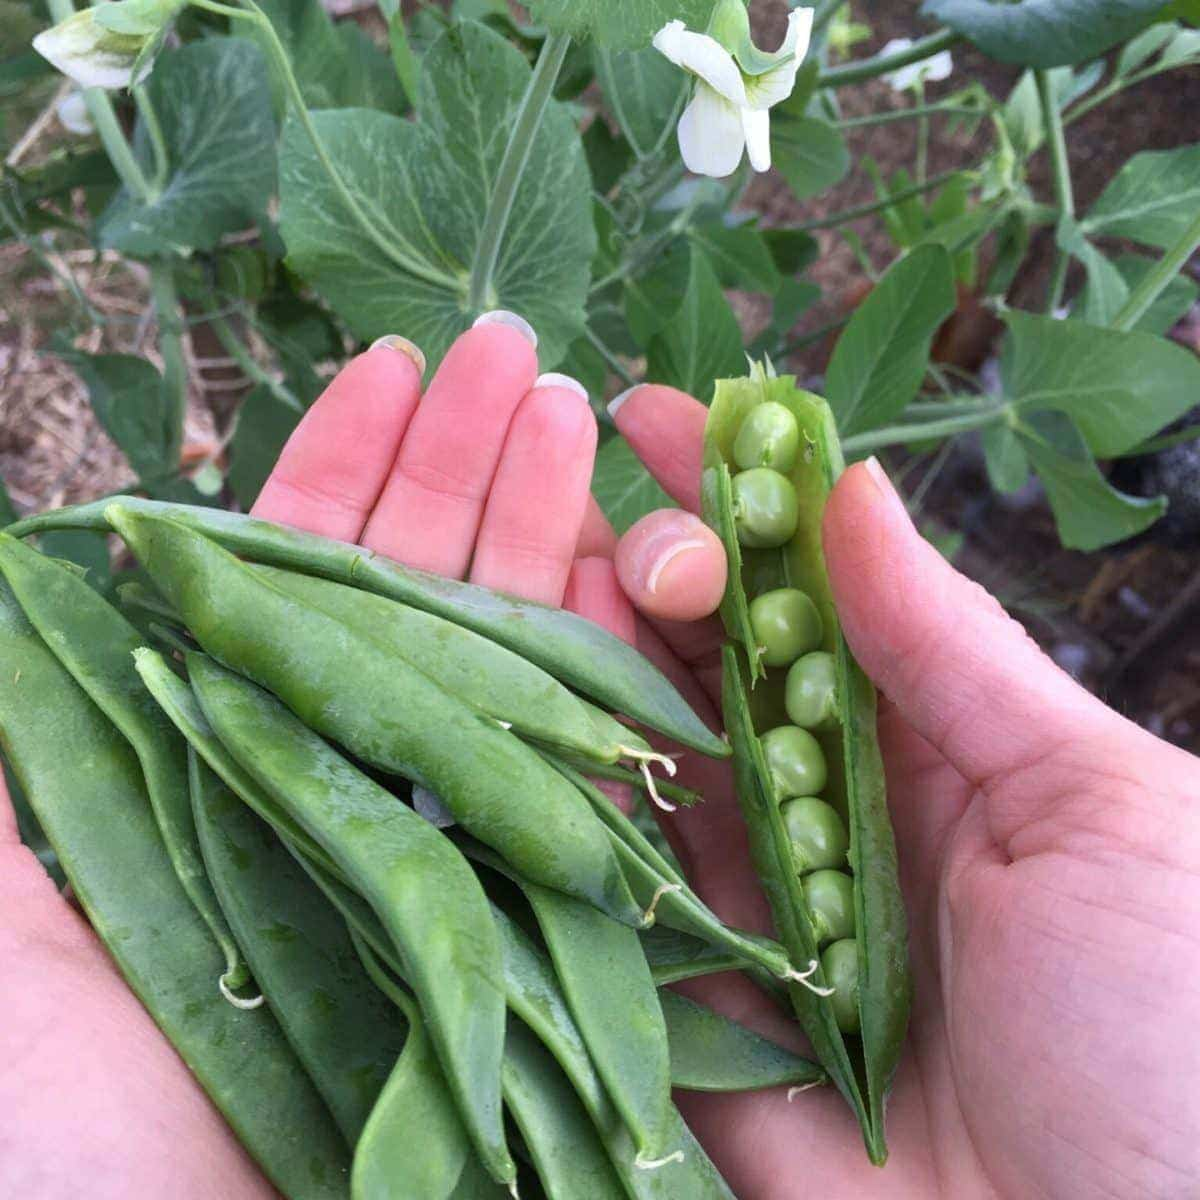 Garden Peas Just Harvested